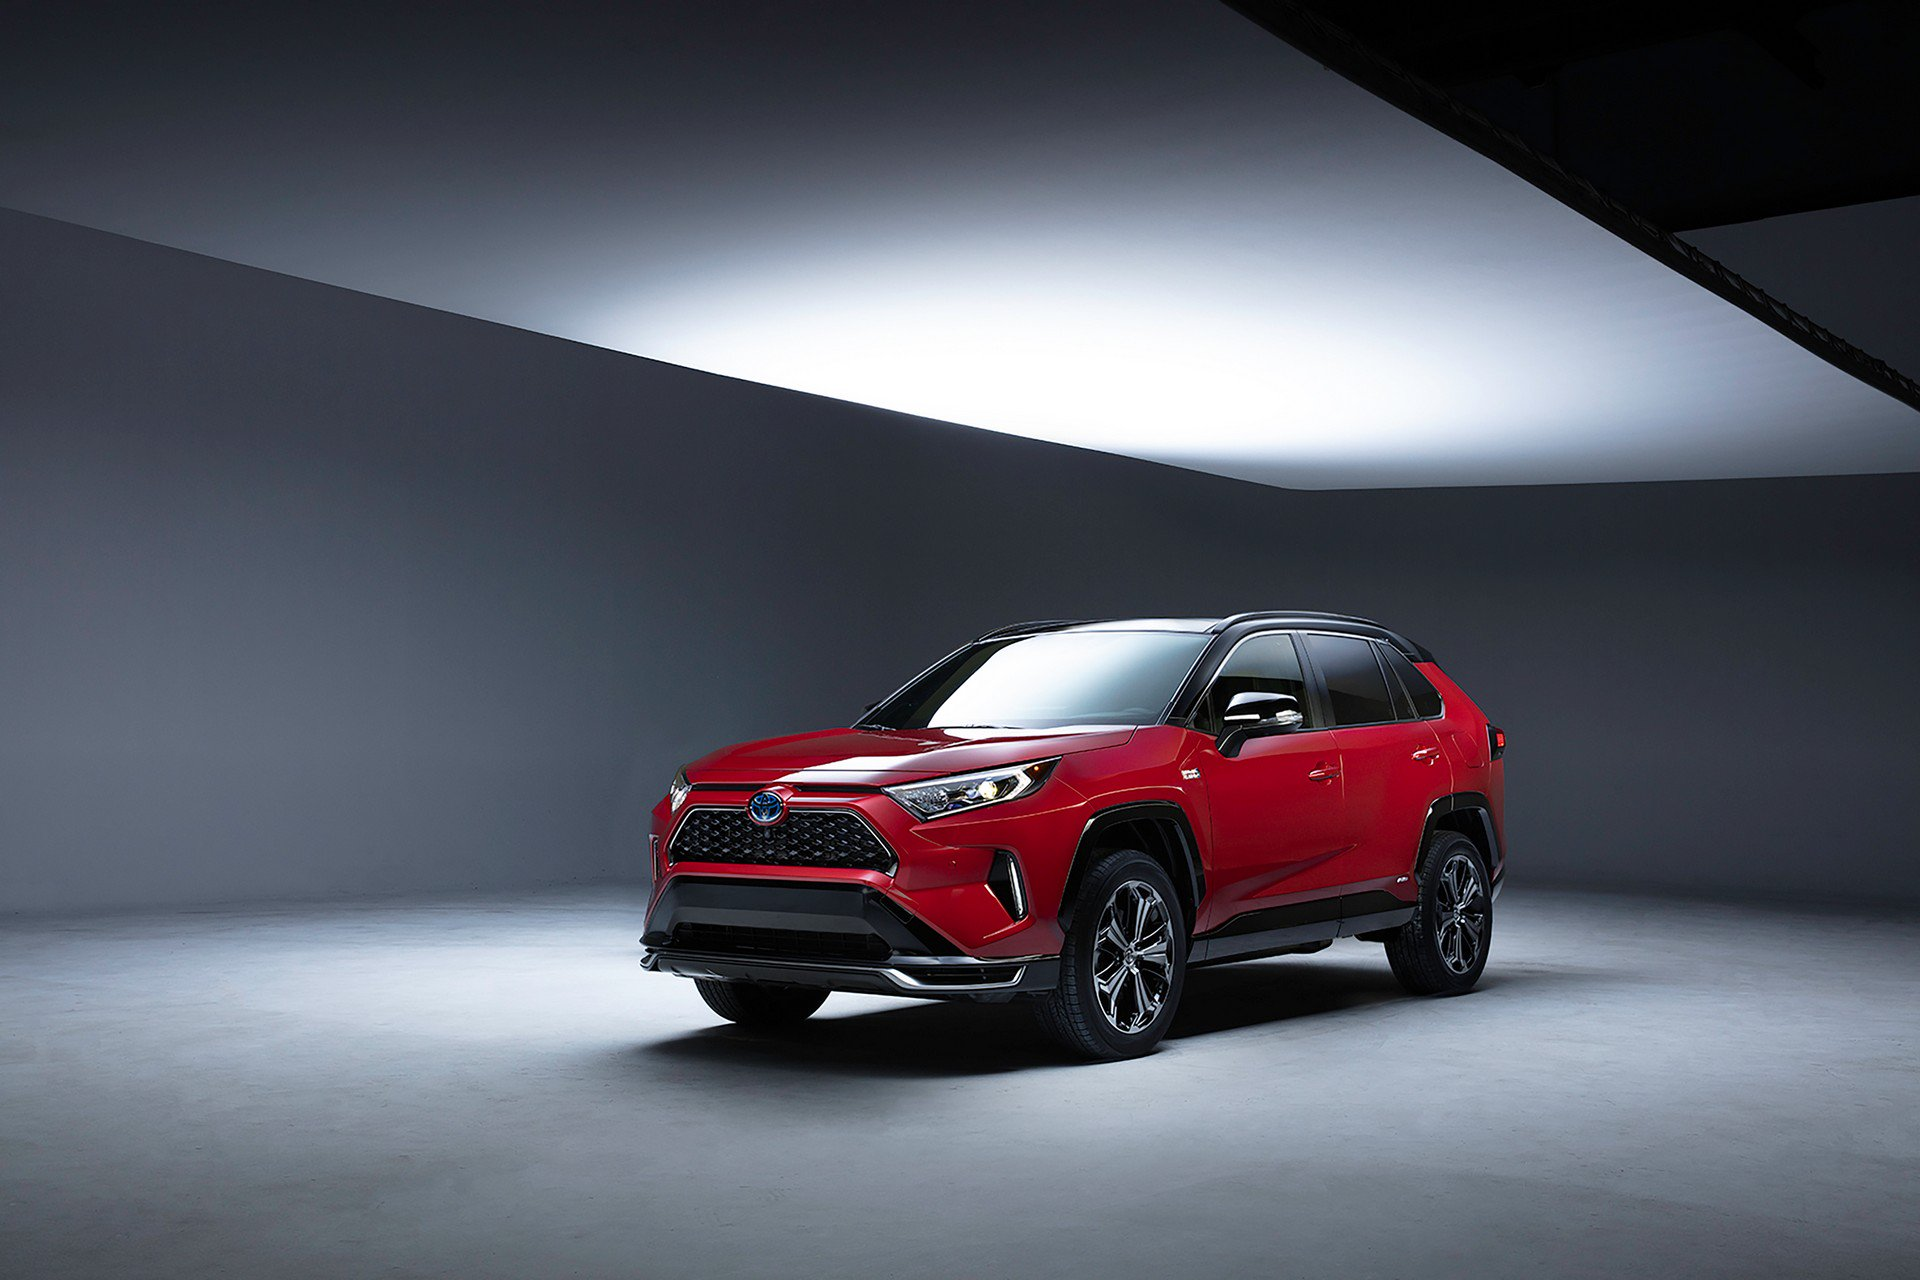 RAV4 Plug-in teased ahead of its official debut